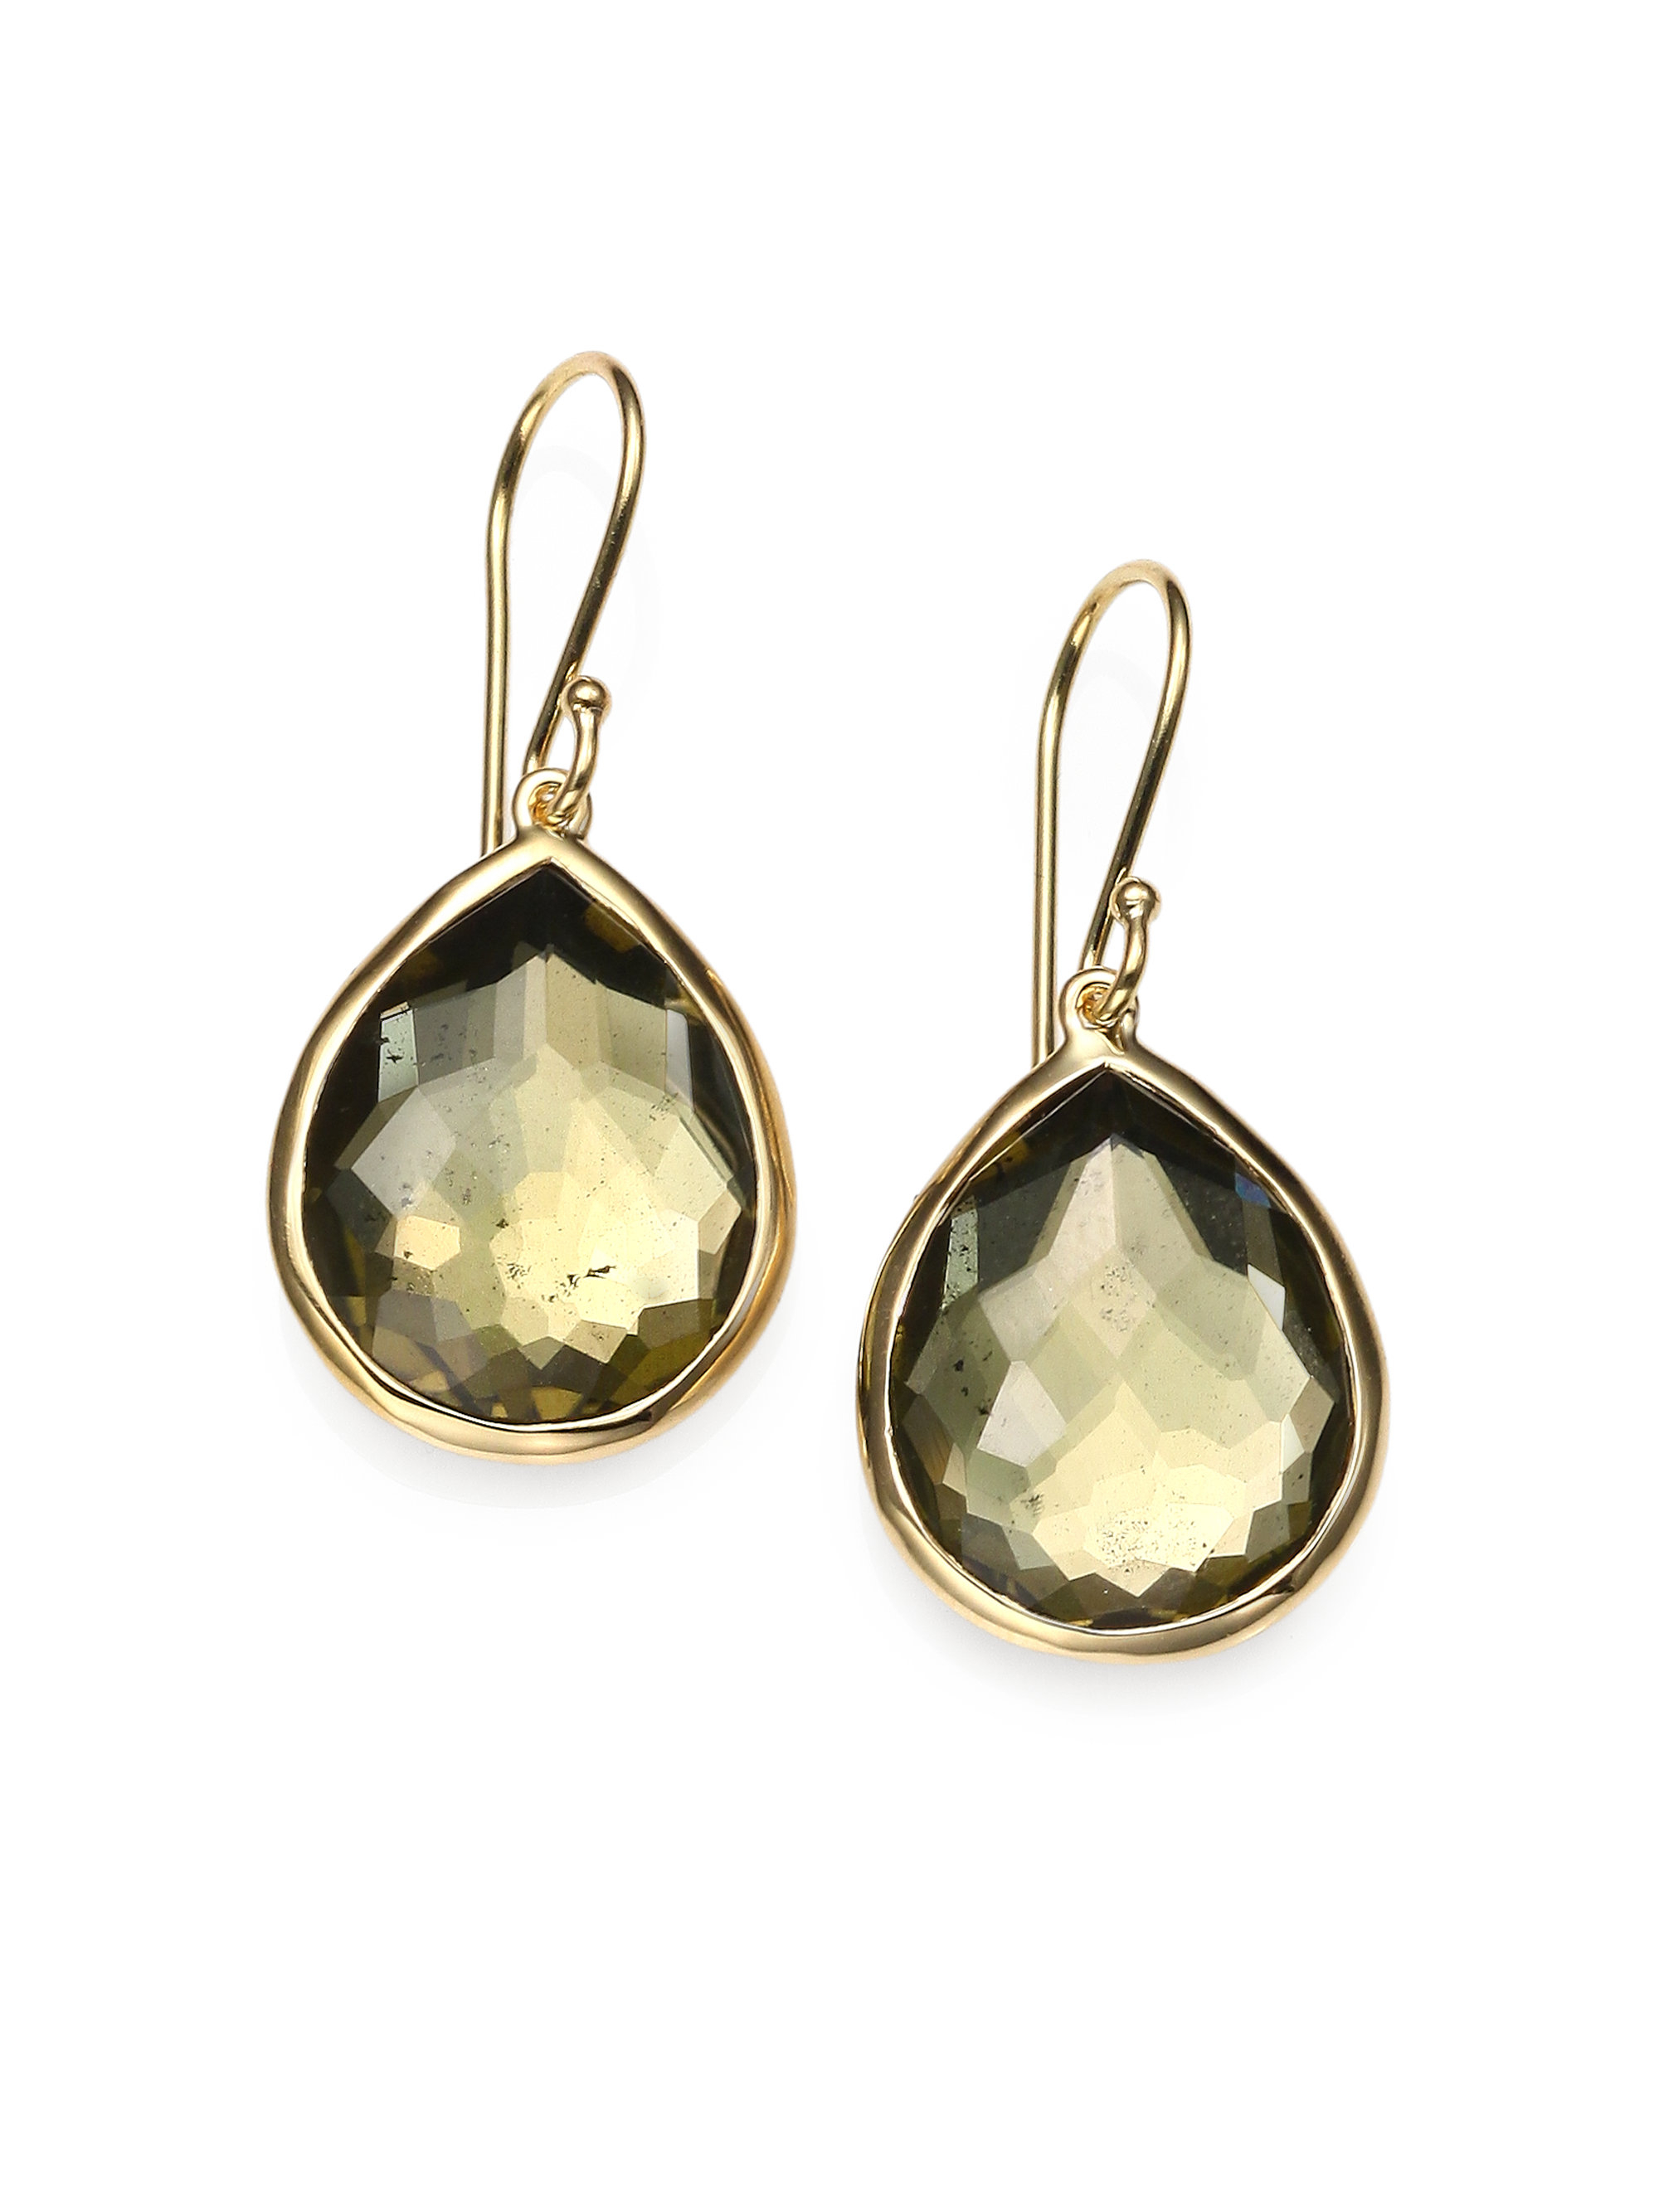 Ippolita 18k Gold Rock Candy Mini Lollipop Earrings QAVLUyH